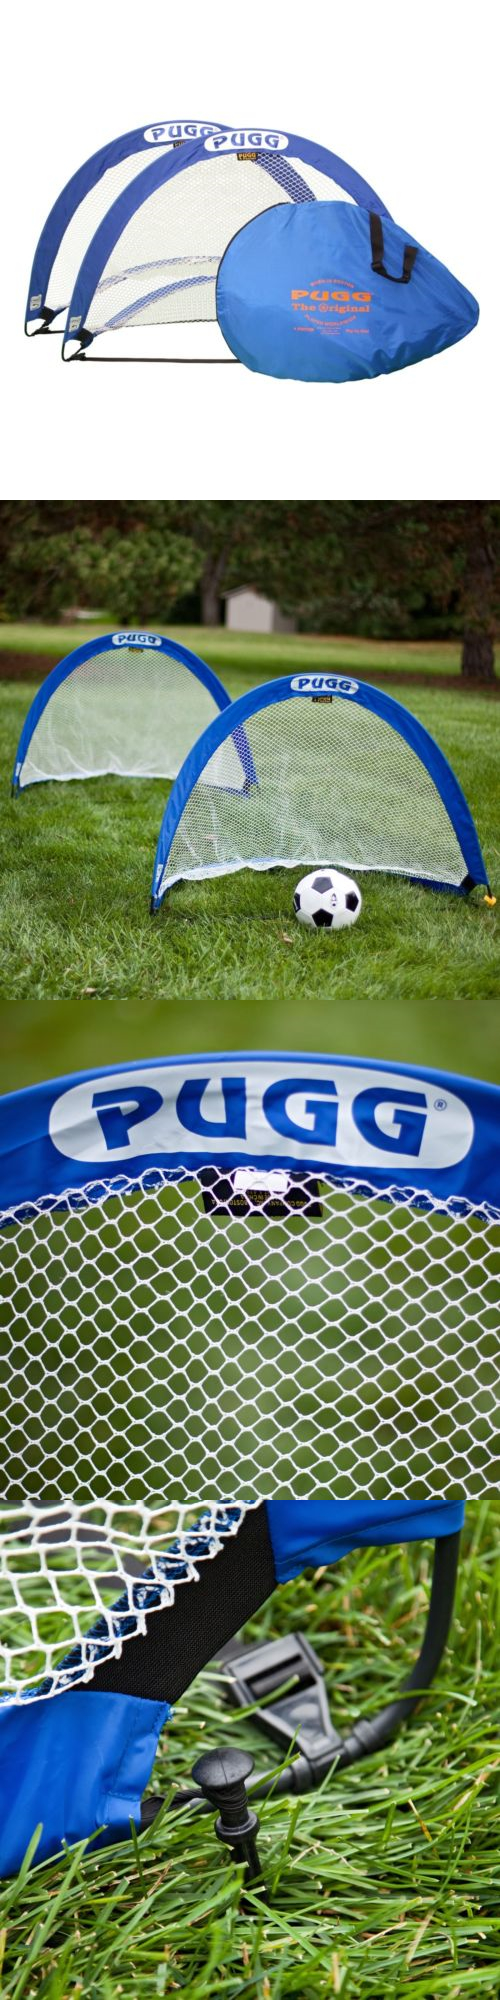 goals and nets 159180 soccer goals for backyard toddlers children